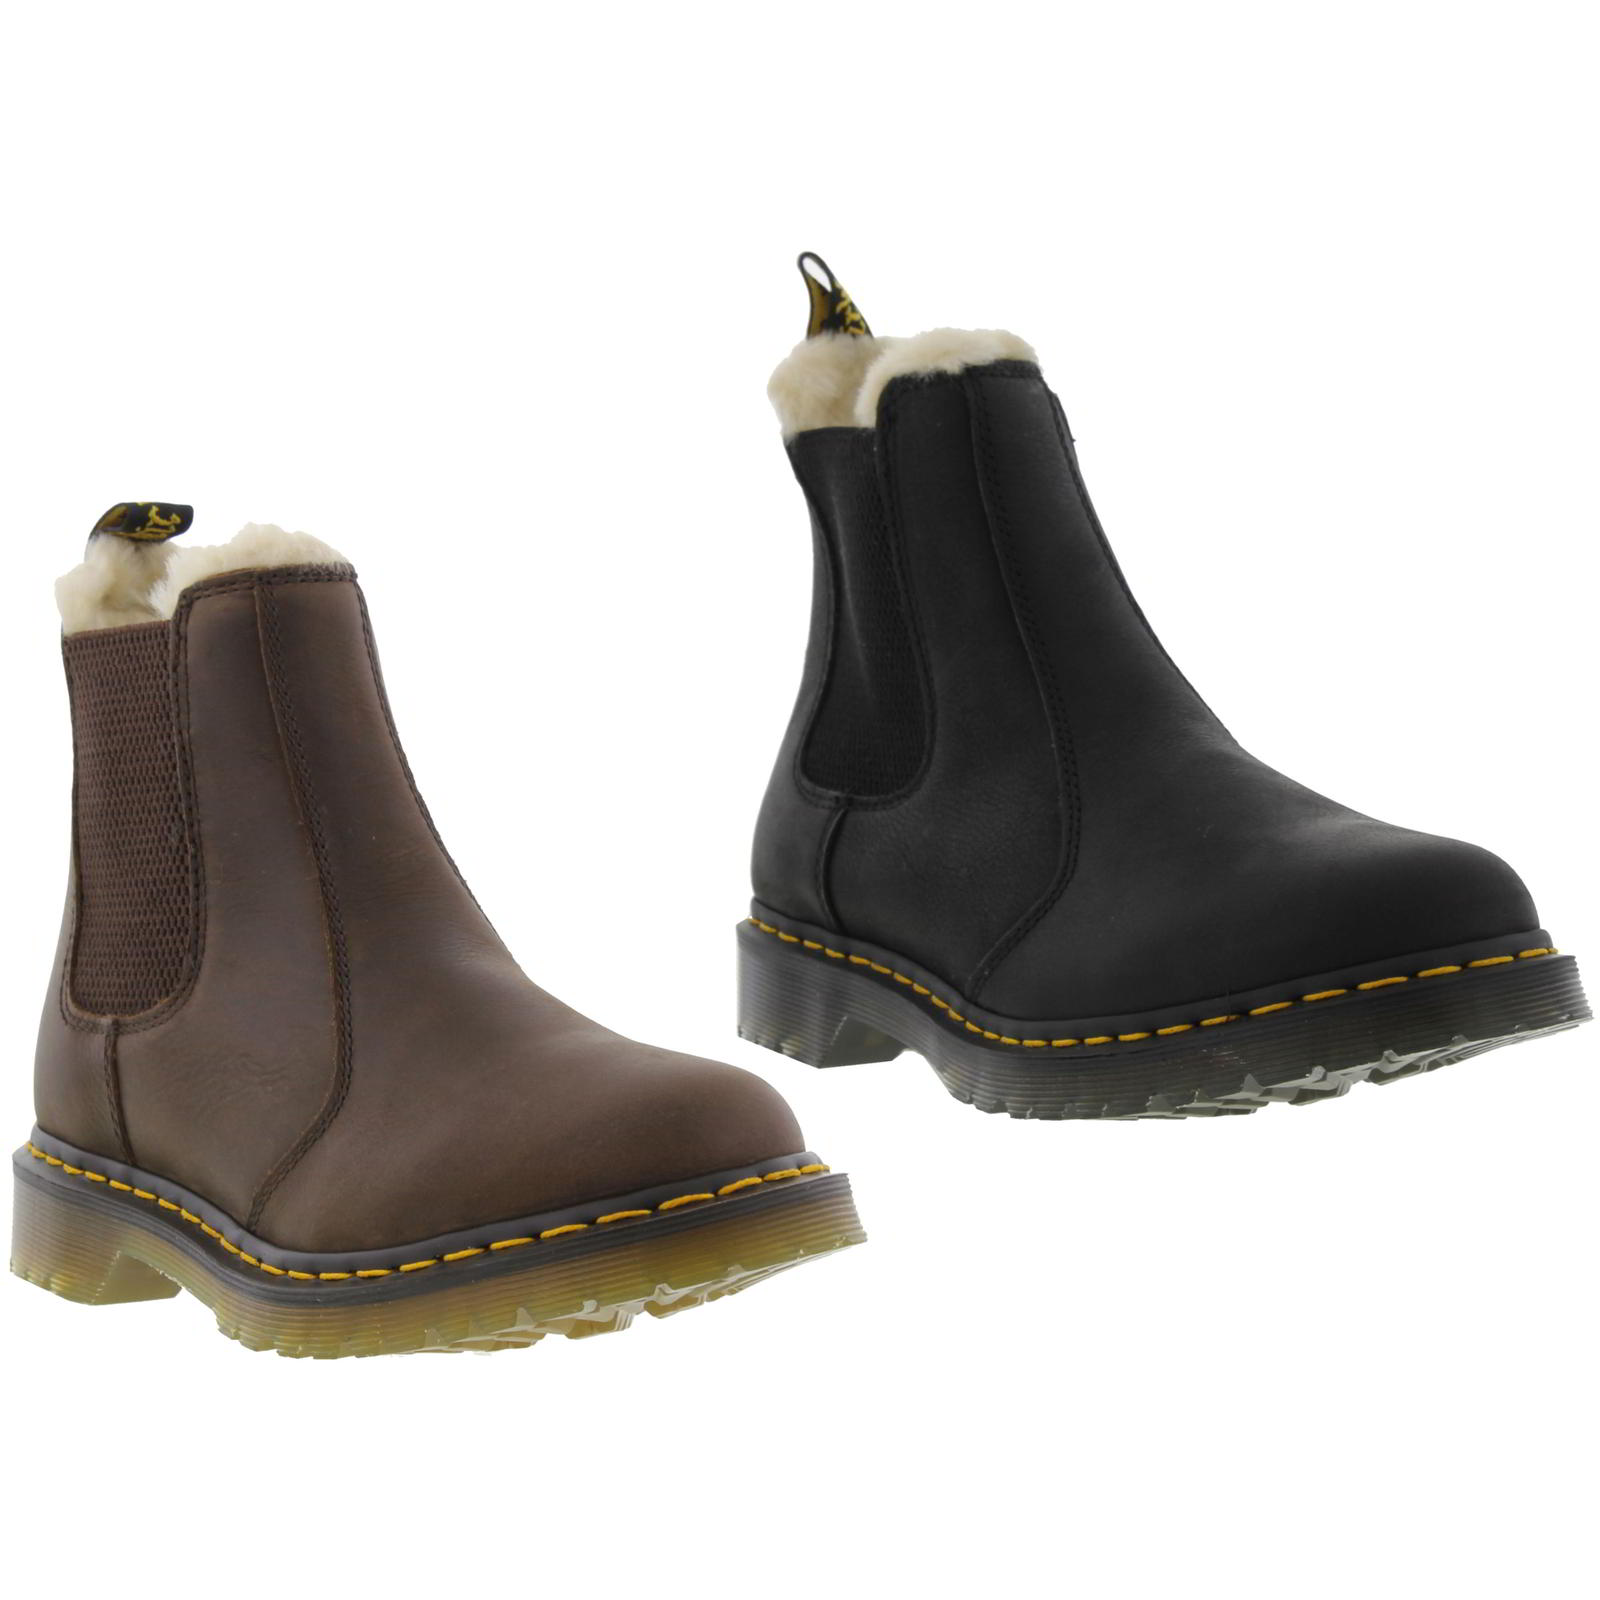 dr martens leonore womens brown leather faux fur lined boots size 4 8. Black Bedroom Furniture Sets. Home Design Ideas